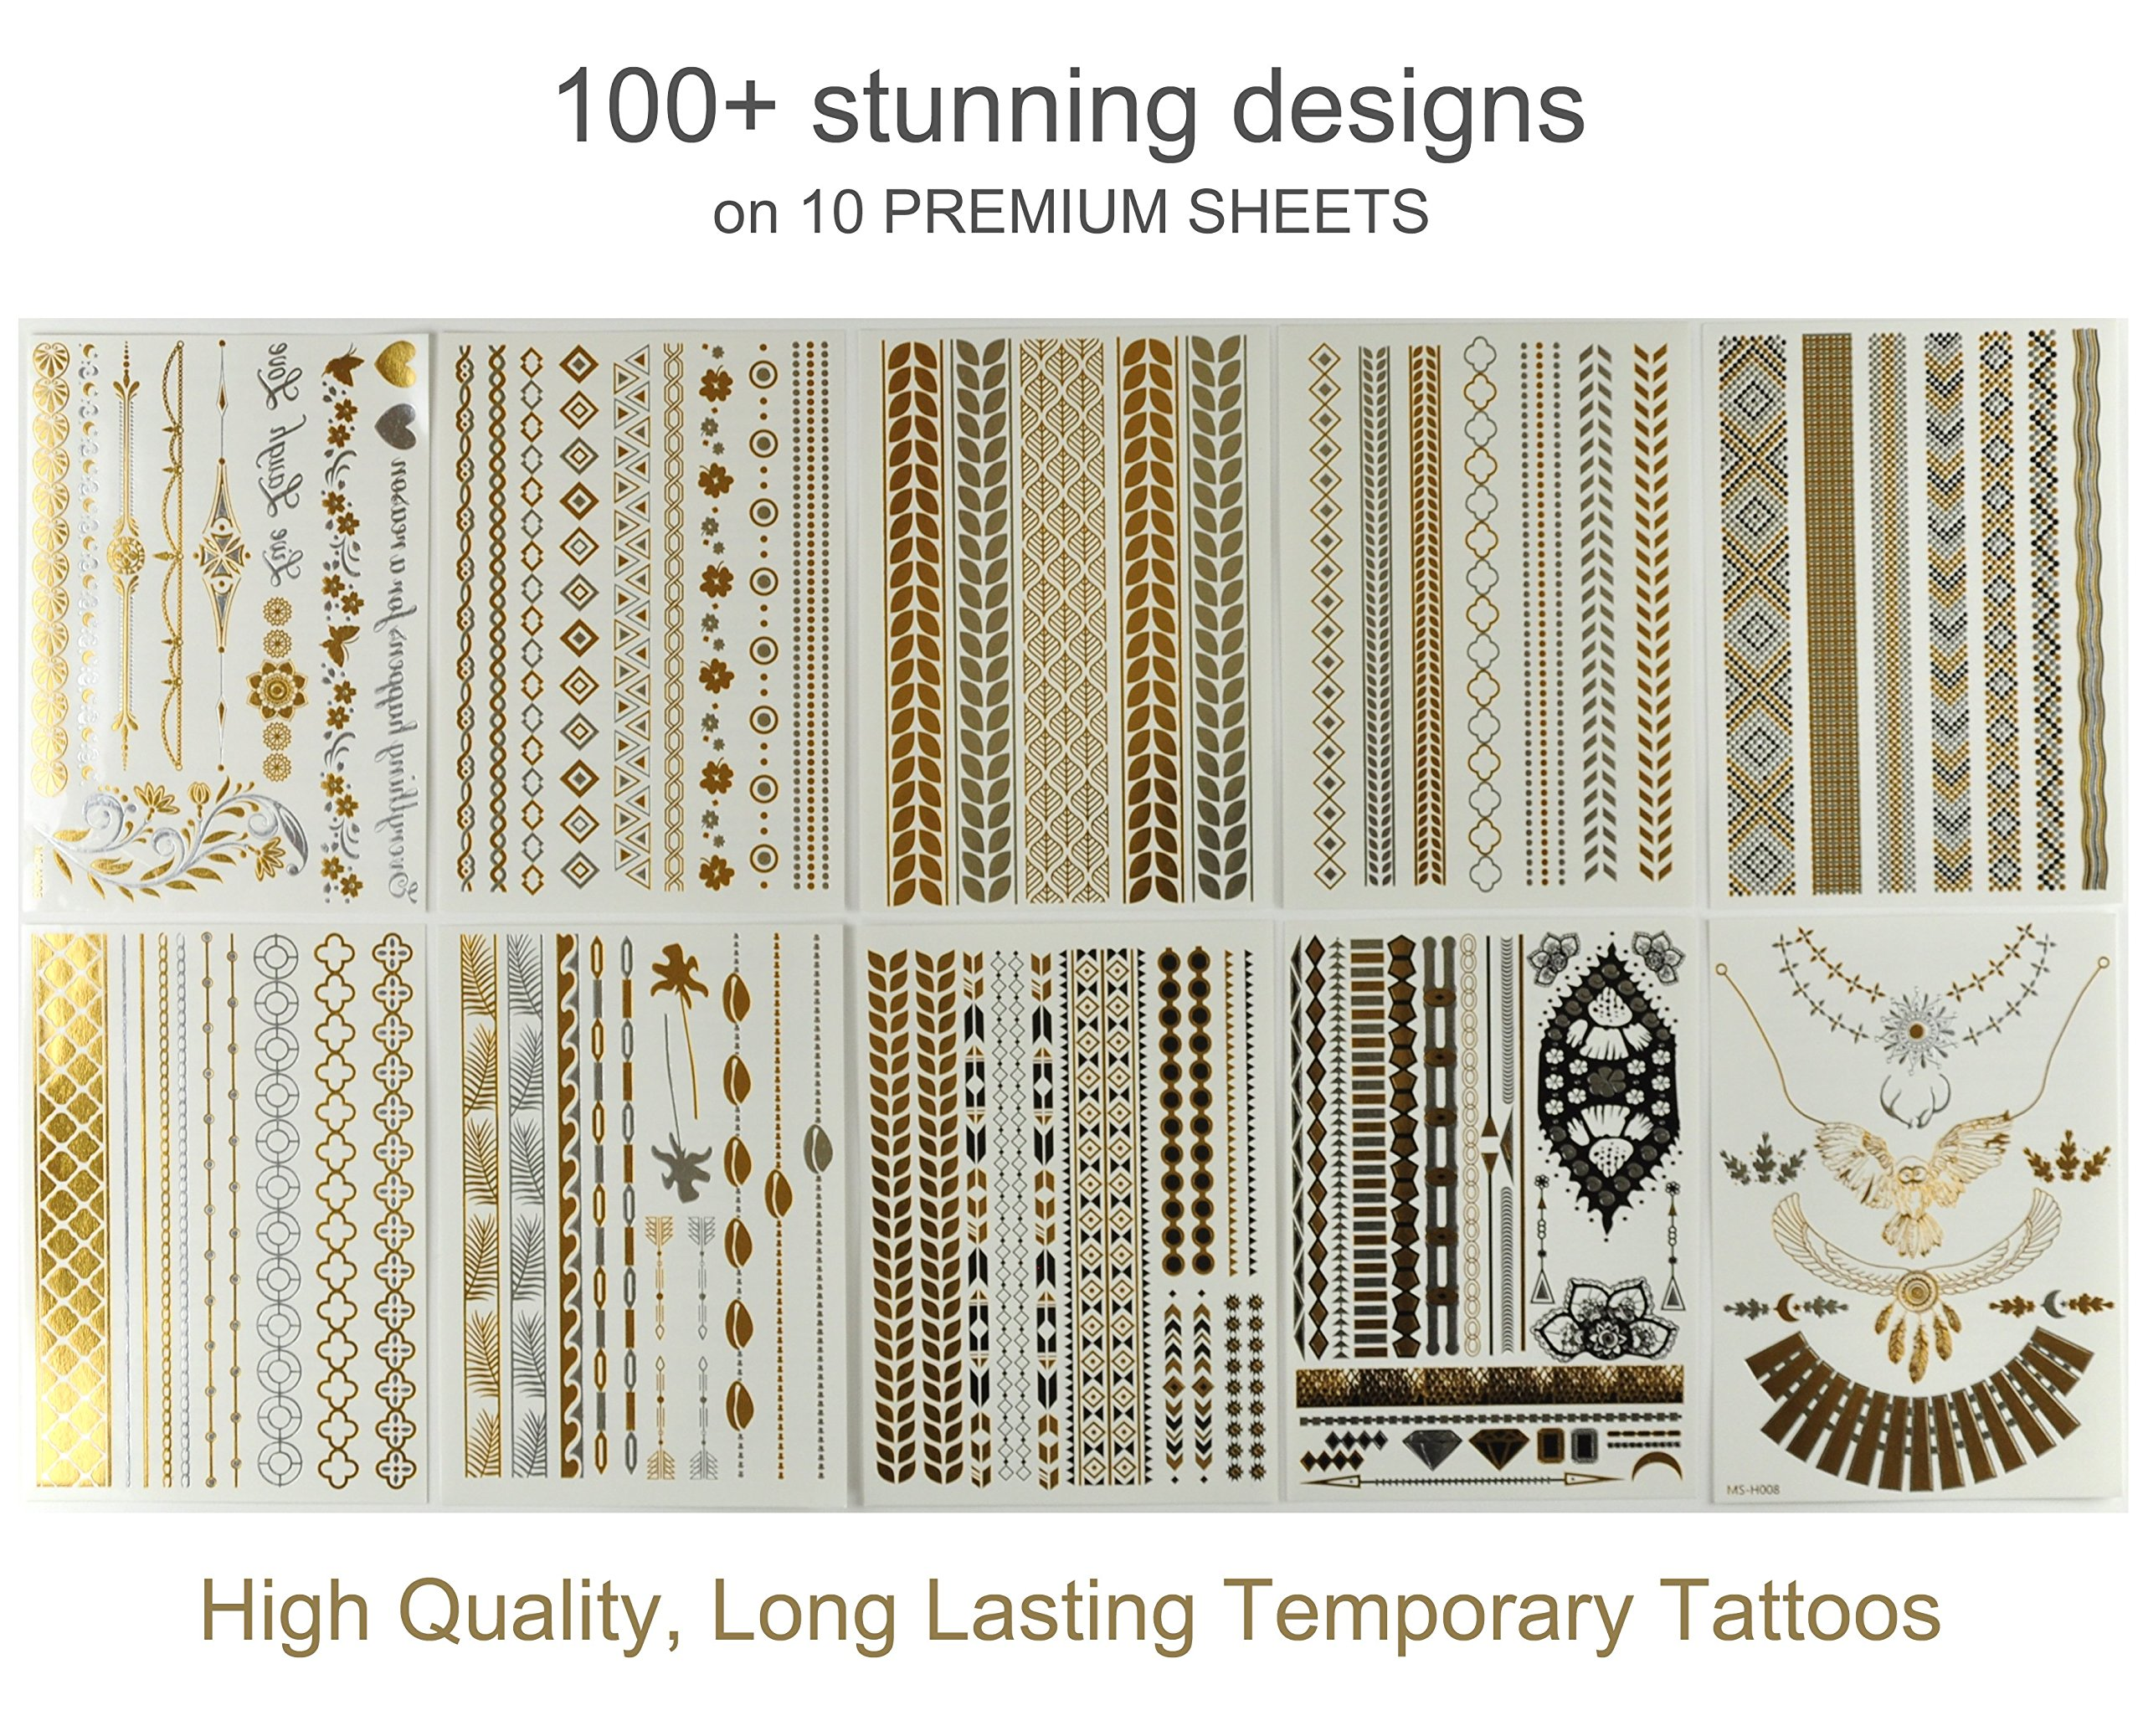 Classy Bohemian Temporary Metallic Tattoos for Body and Hair (10-Sheets) by Classy BohemianTM (Image #1)